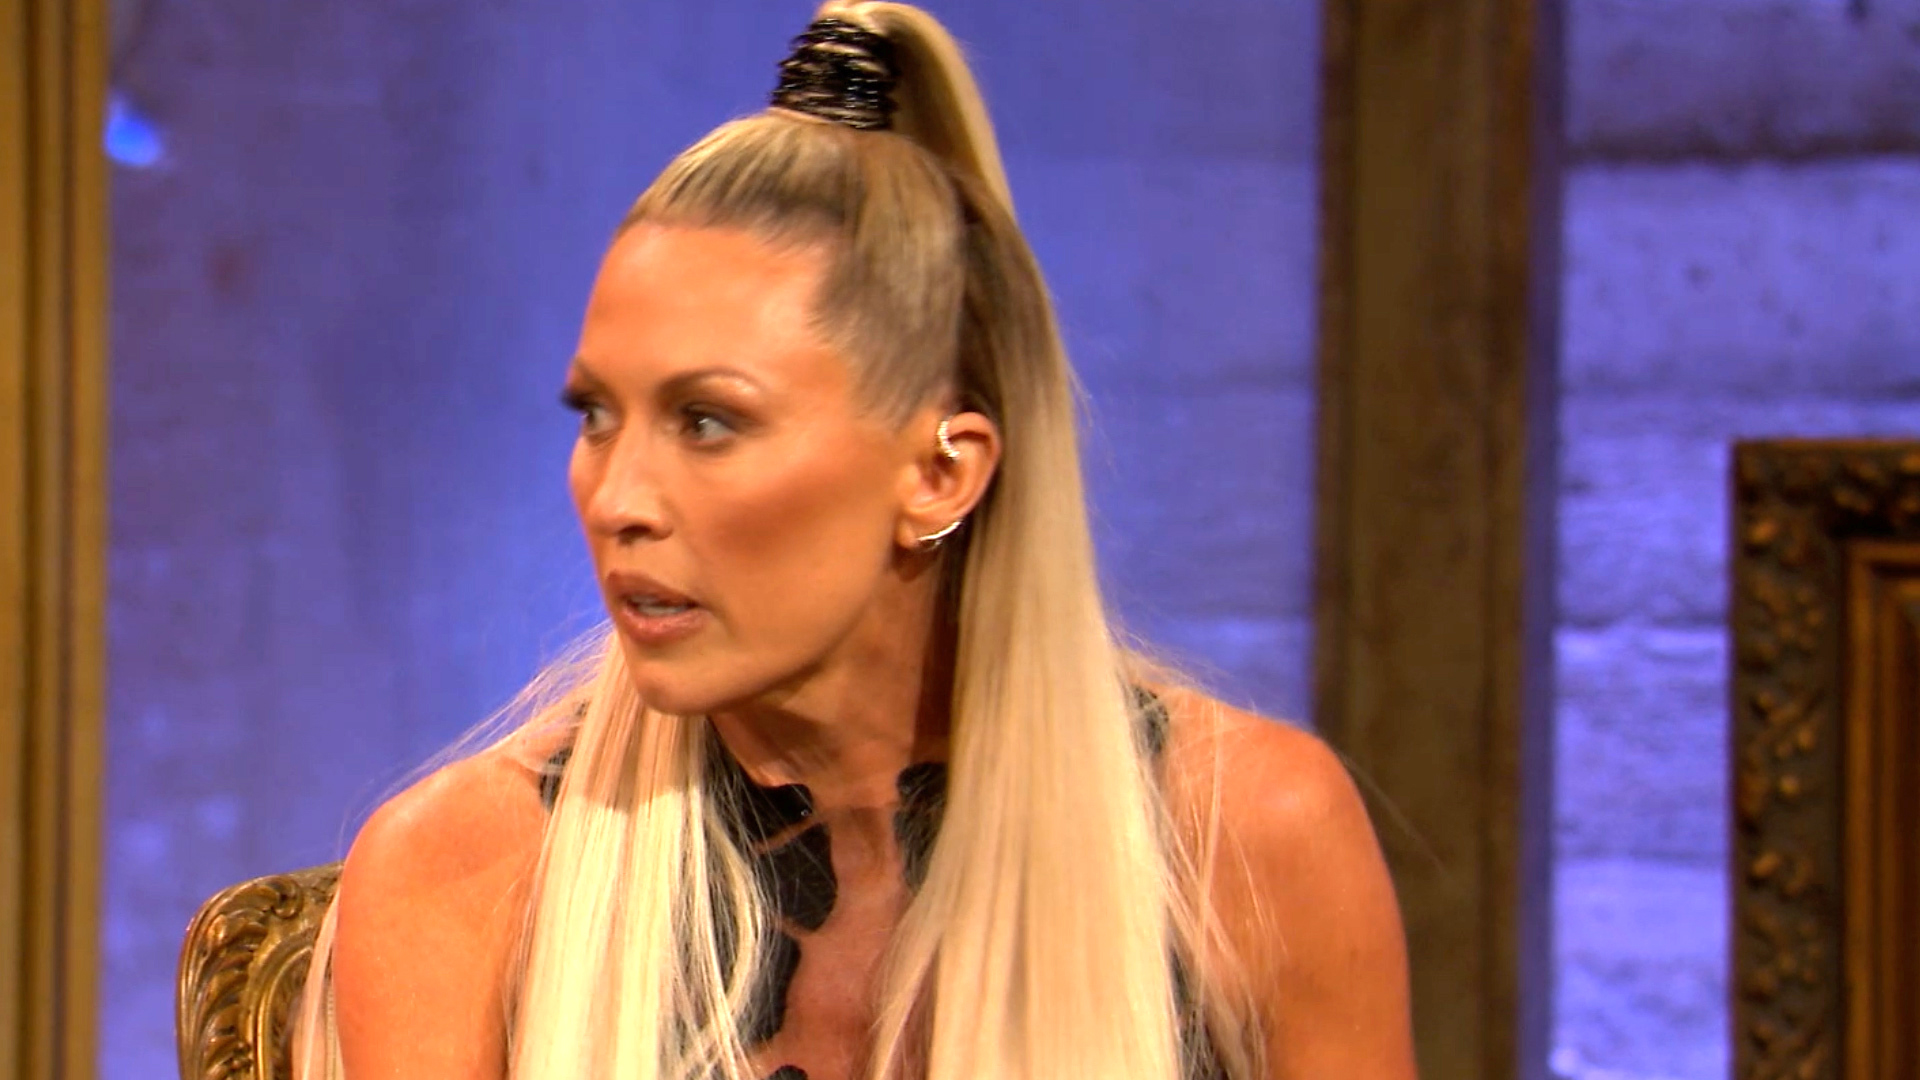 Braunwyn Windham-Burke Breaks Down in Tears After Hearing Shannon Storms Beador's Allegation